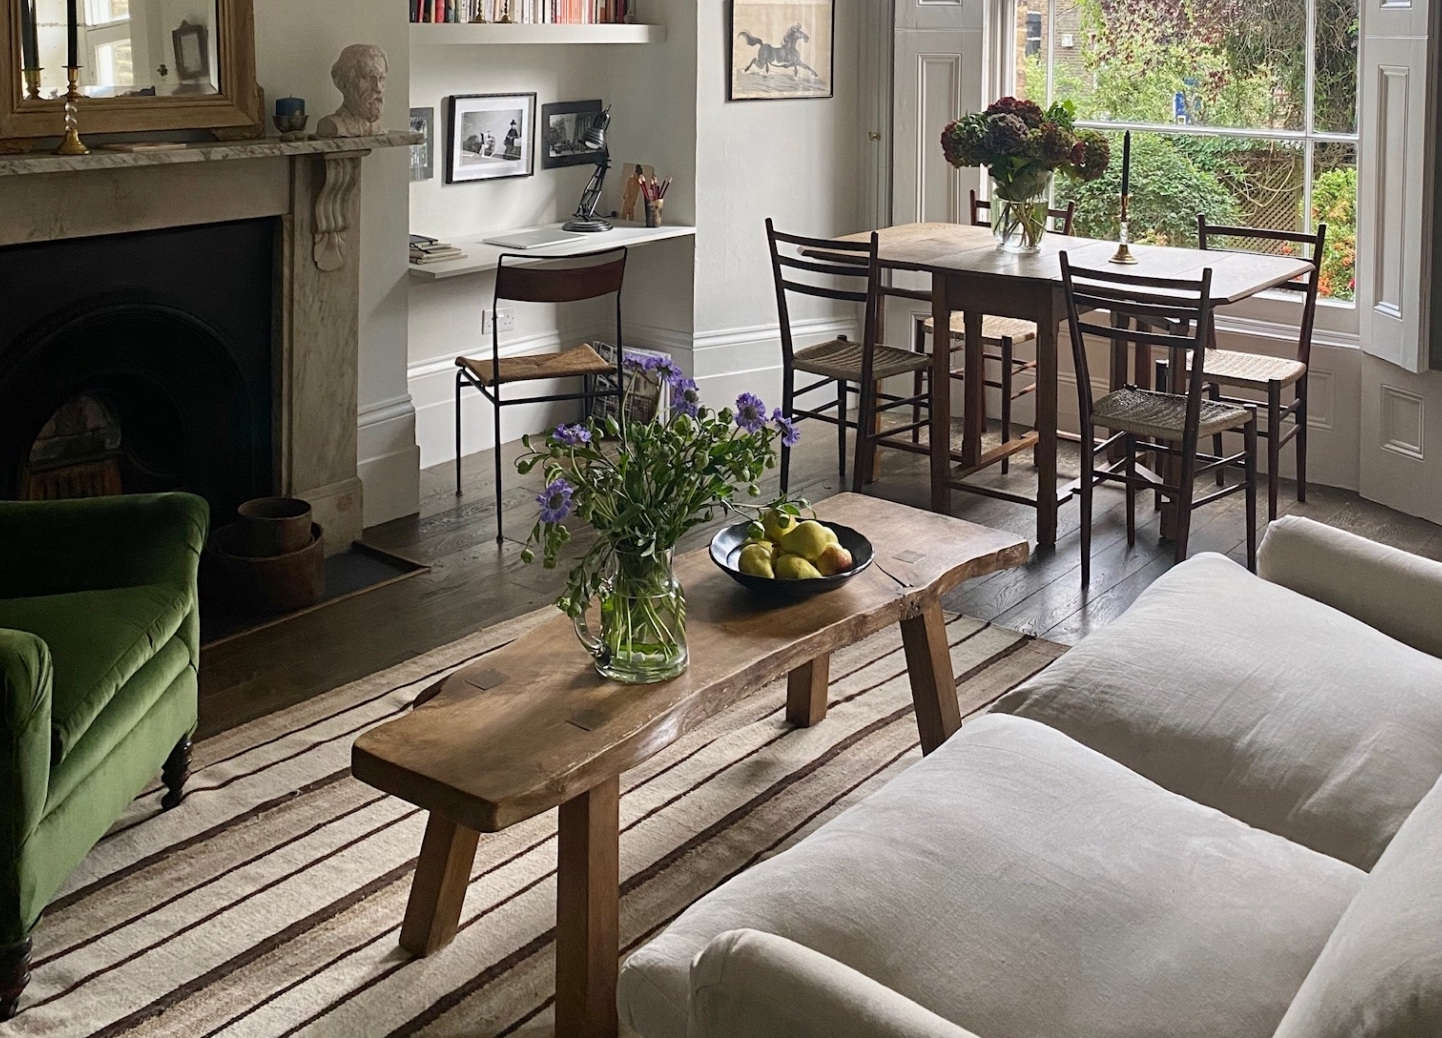 Respect for the Old: In a Tiny London Flat, Antiques, Vintage Finds, and Charm to Spare - Remodelista